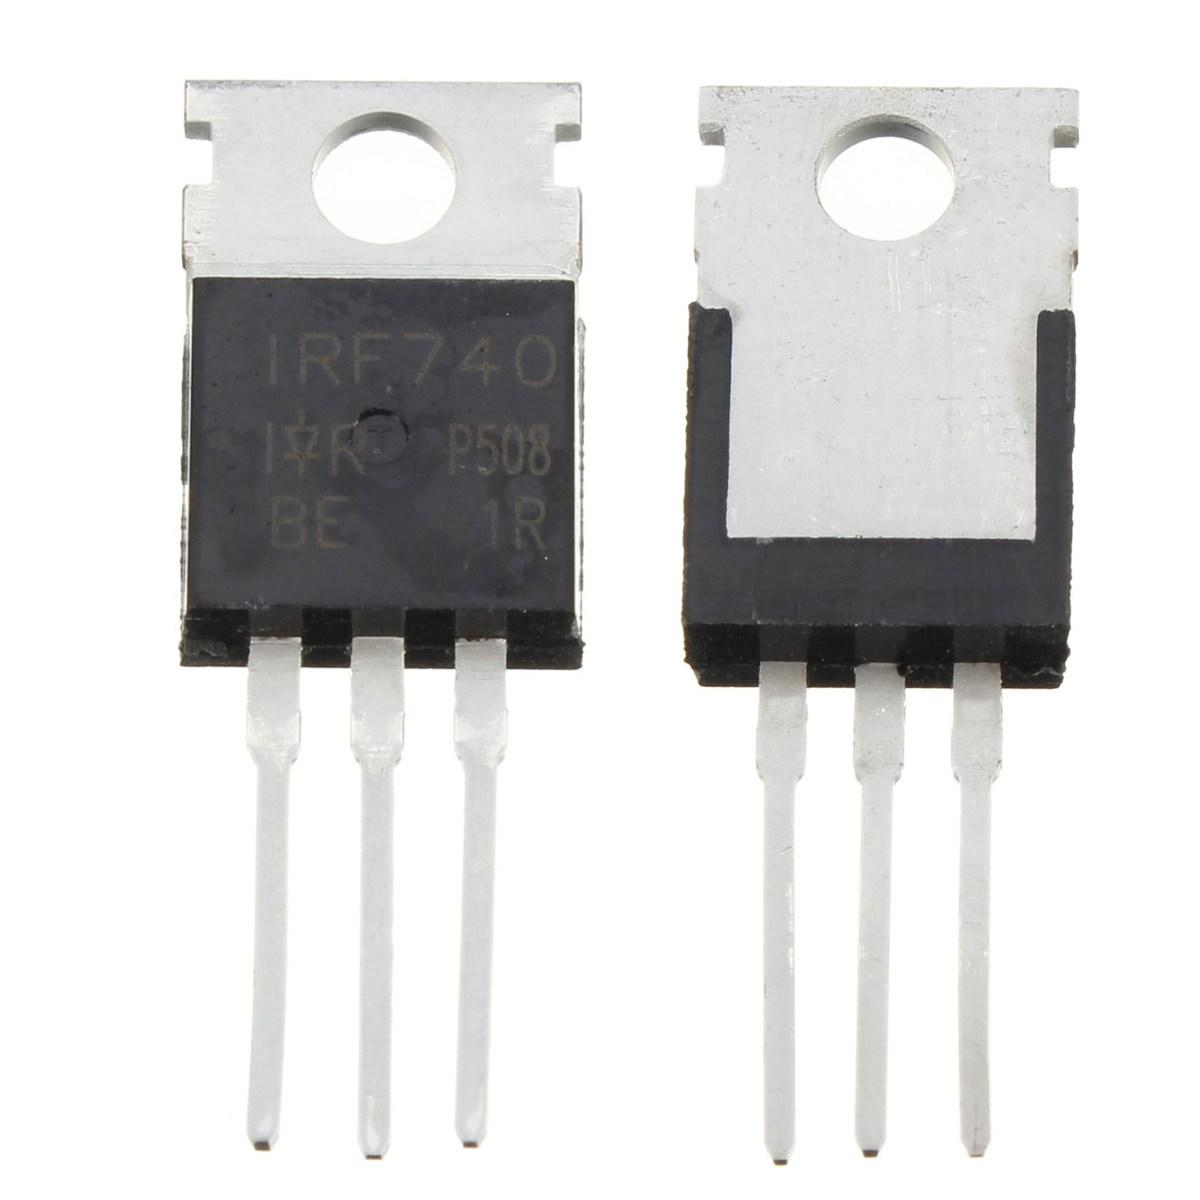 2018 2016 Electronic Circuit Board High Quality New Irf740 Irf 740 Central Air Conditioning Power Mosfet 10a 400v To 220 From Xiaofuyou3 2042